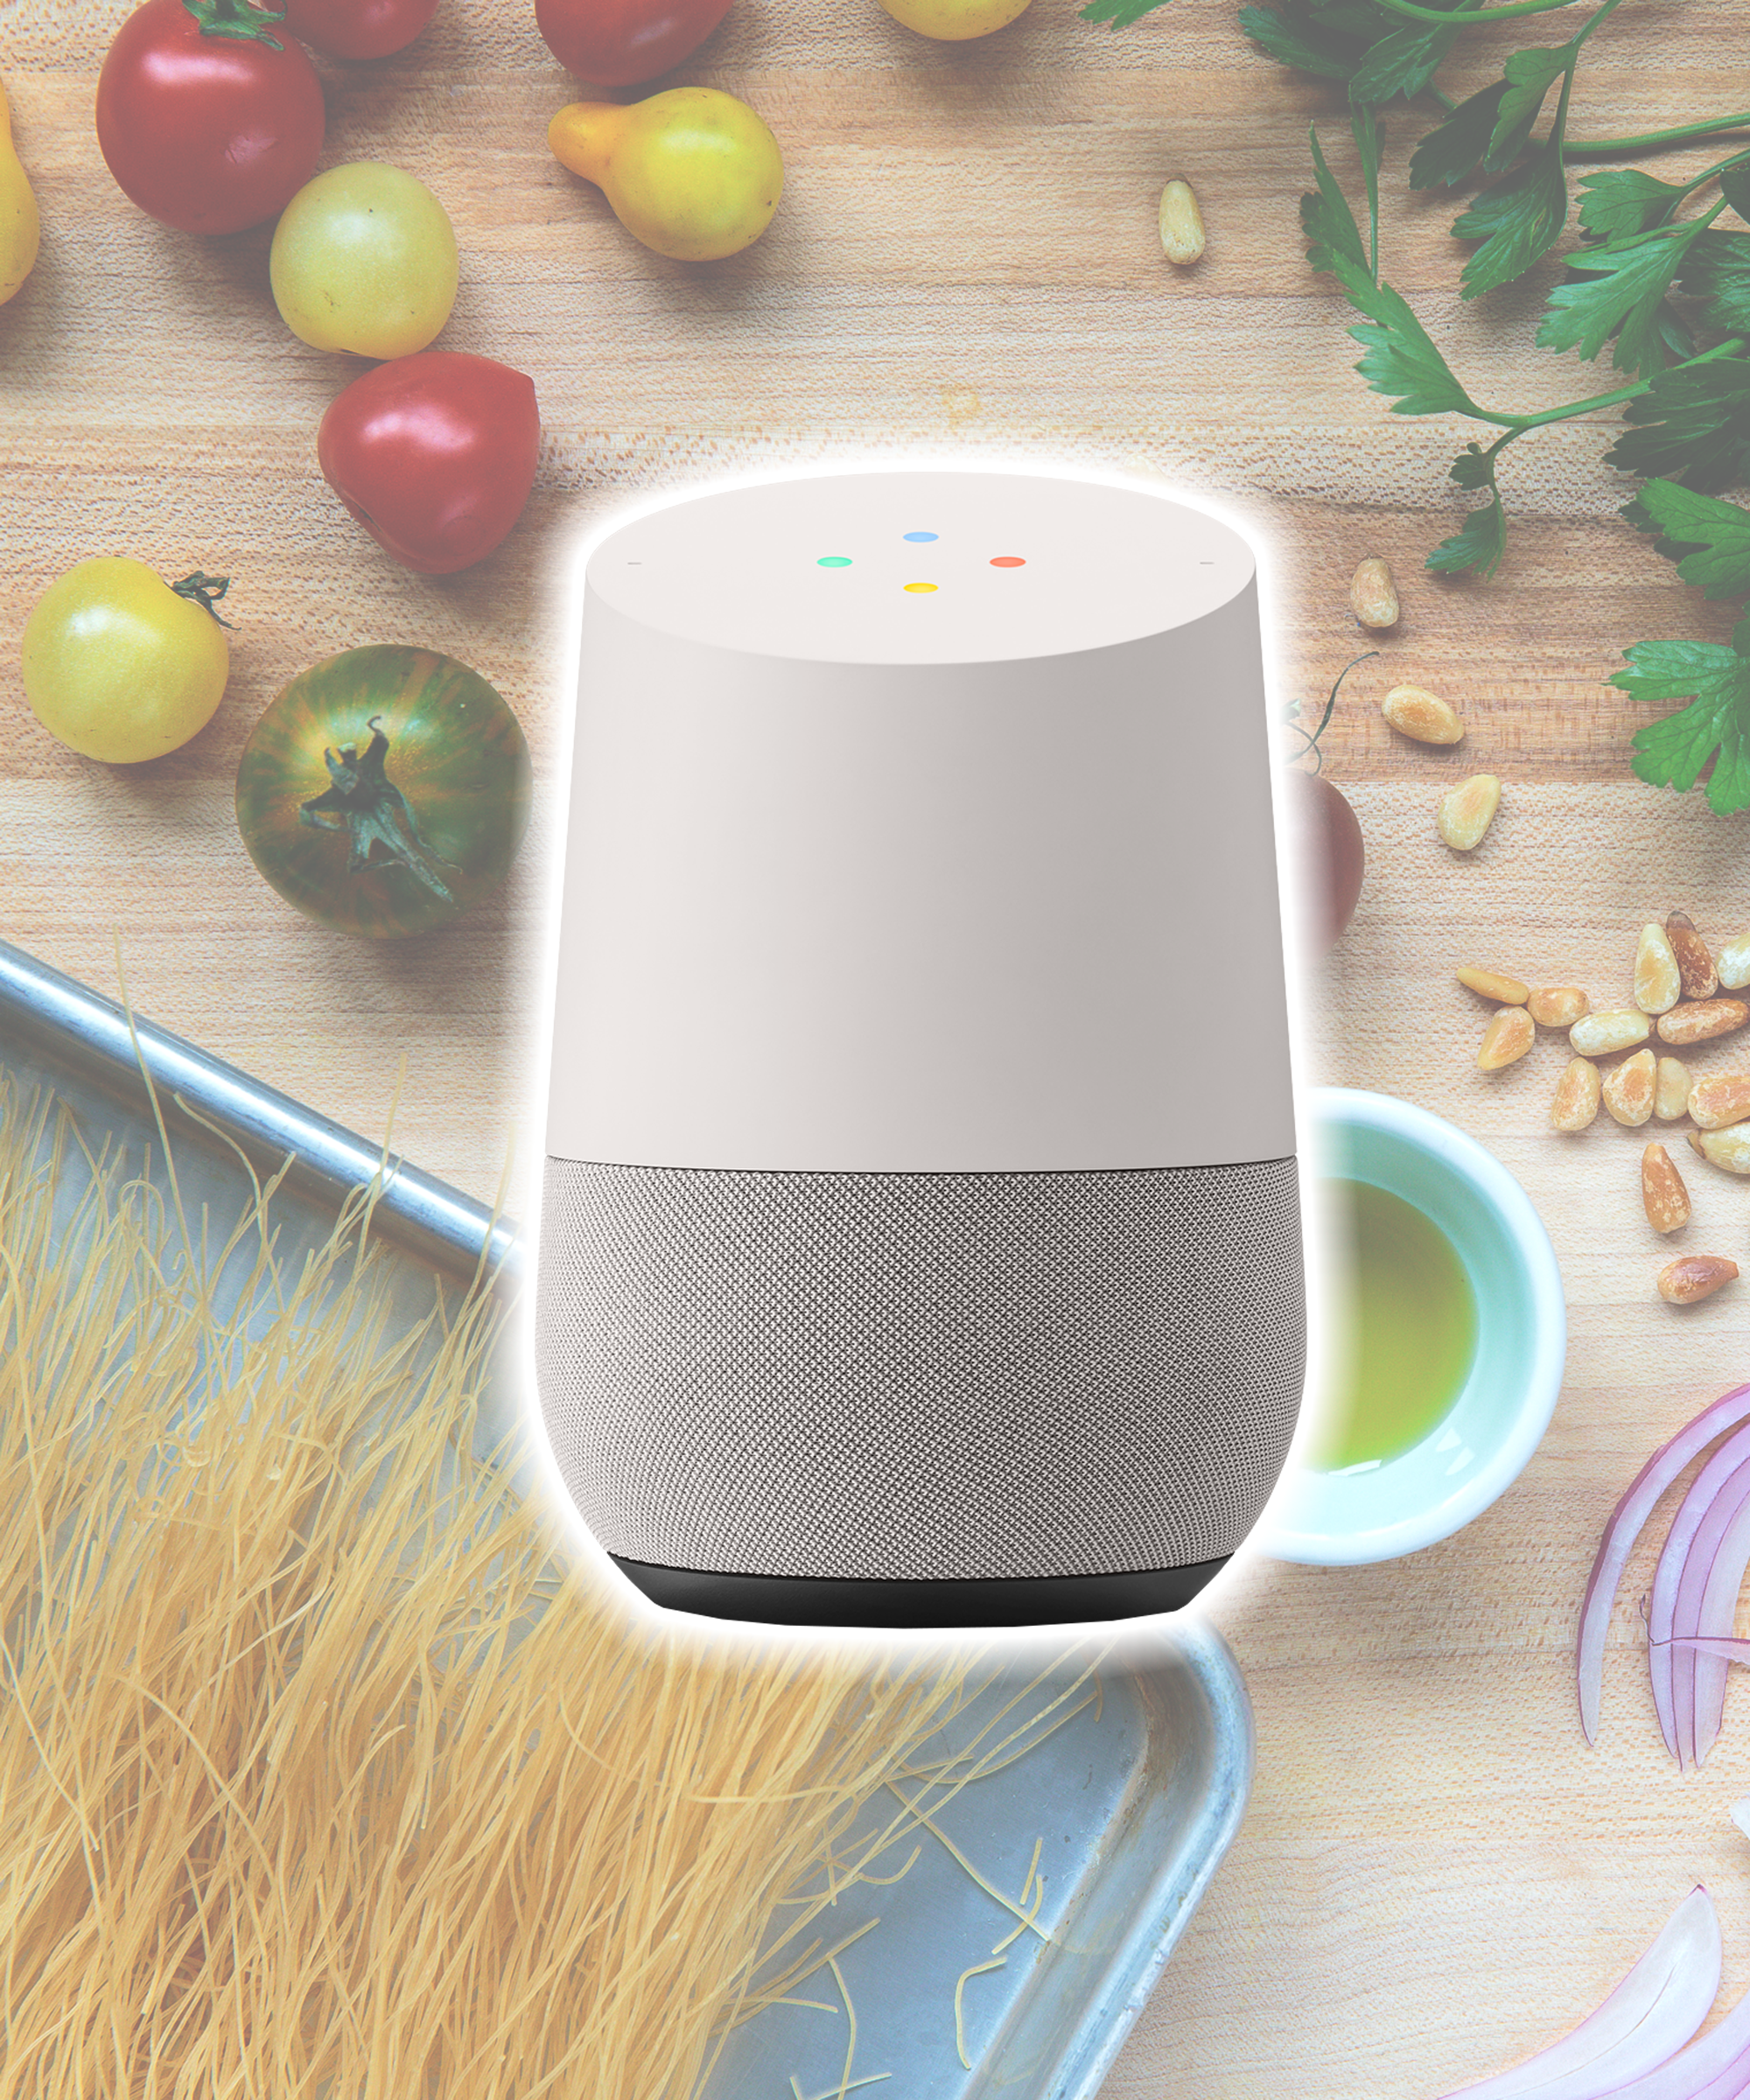 Google Home Just Rolled Out a Very Useful New Kitchen Feature